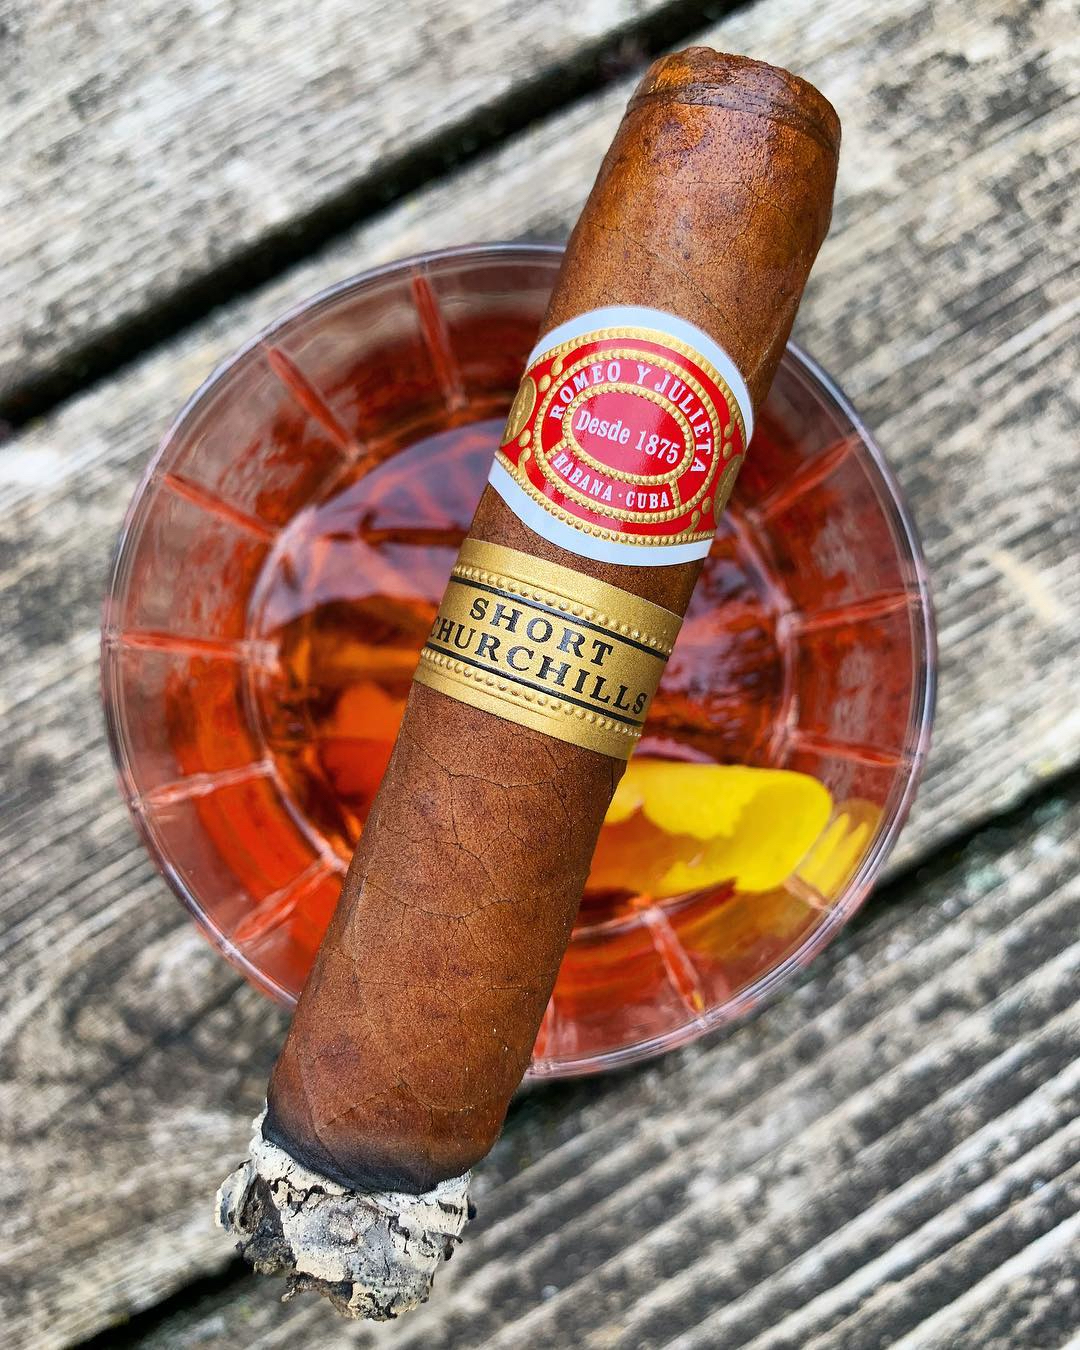 where can we find cigars in Havana